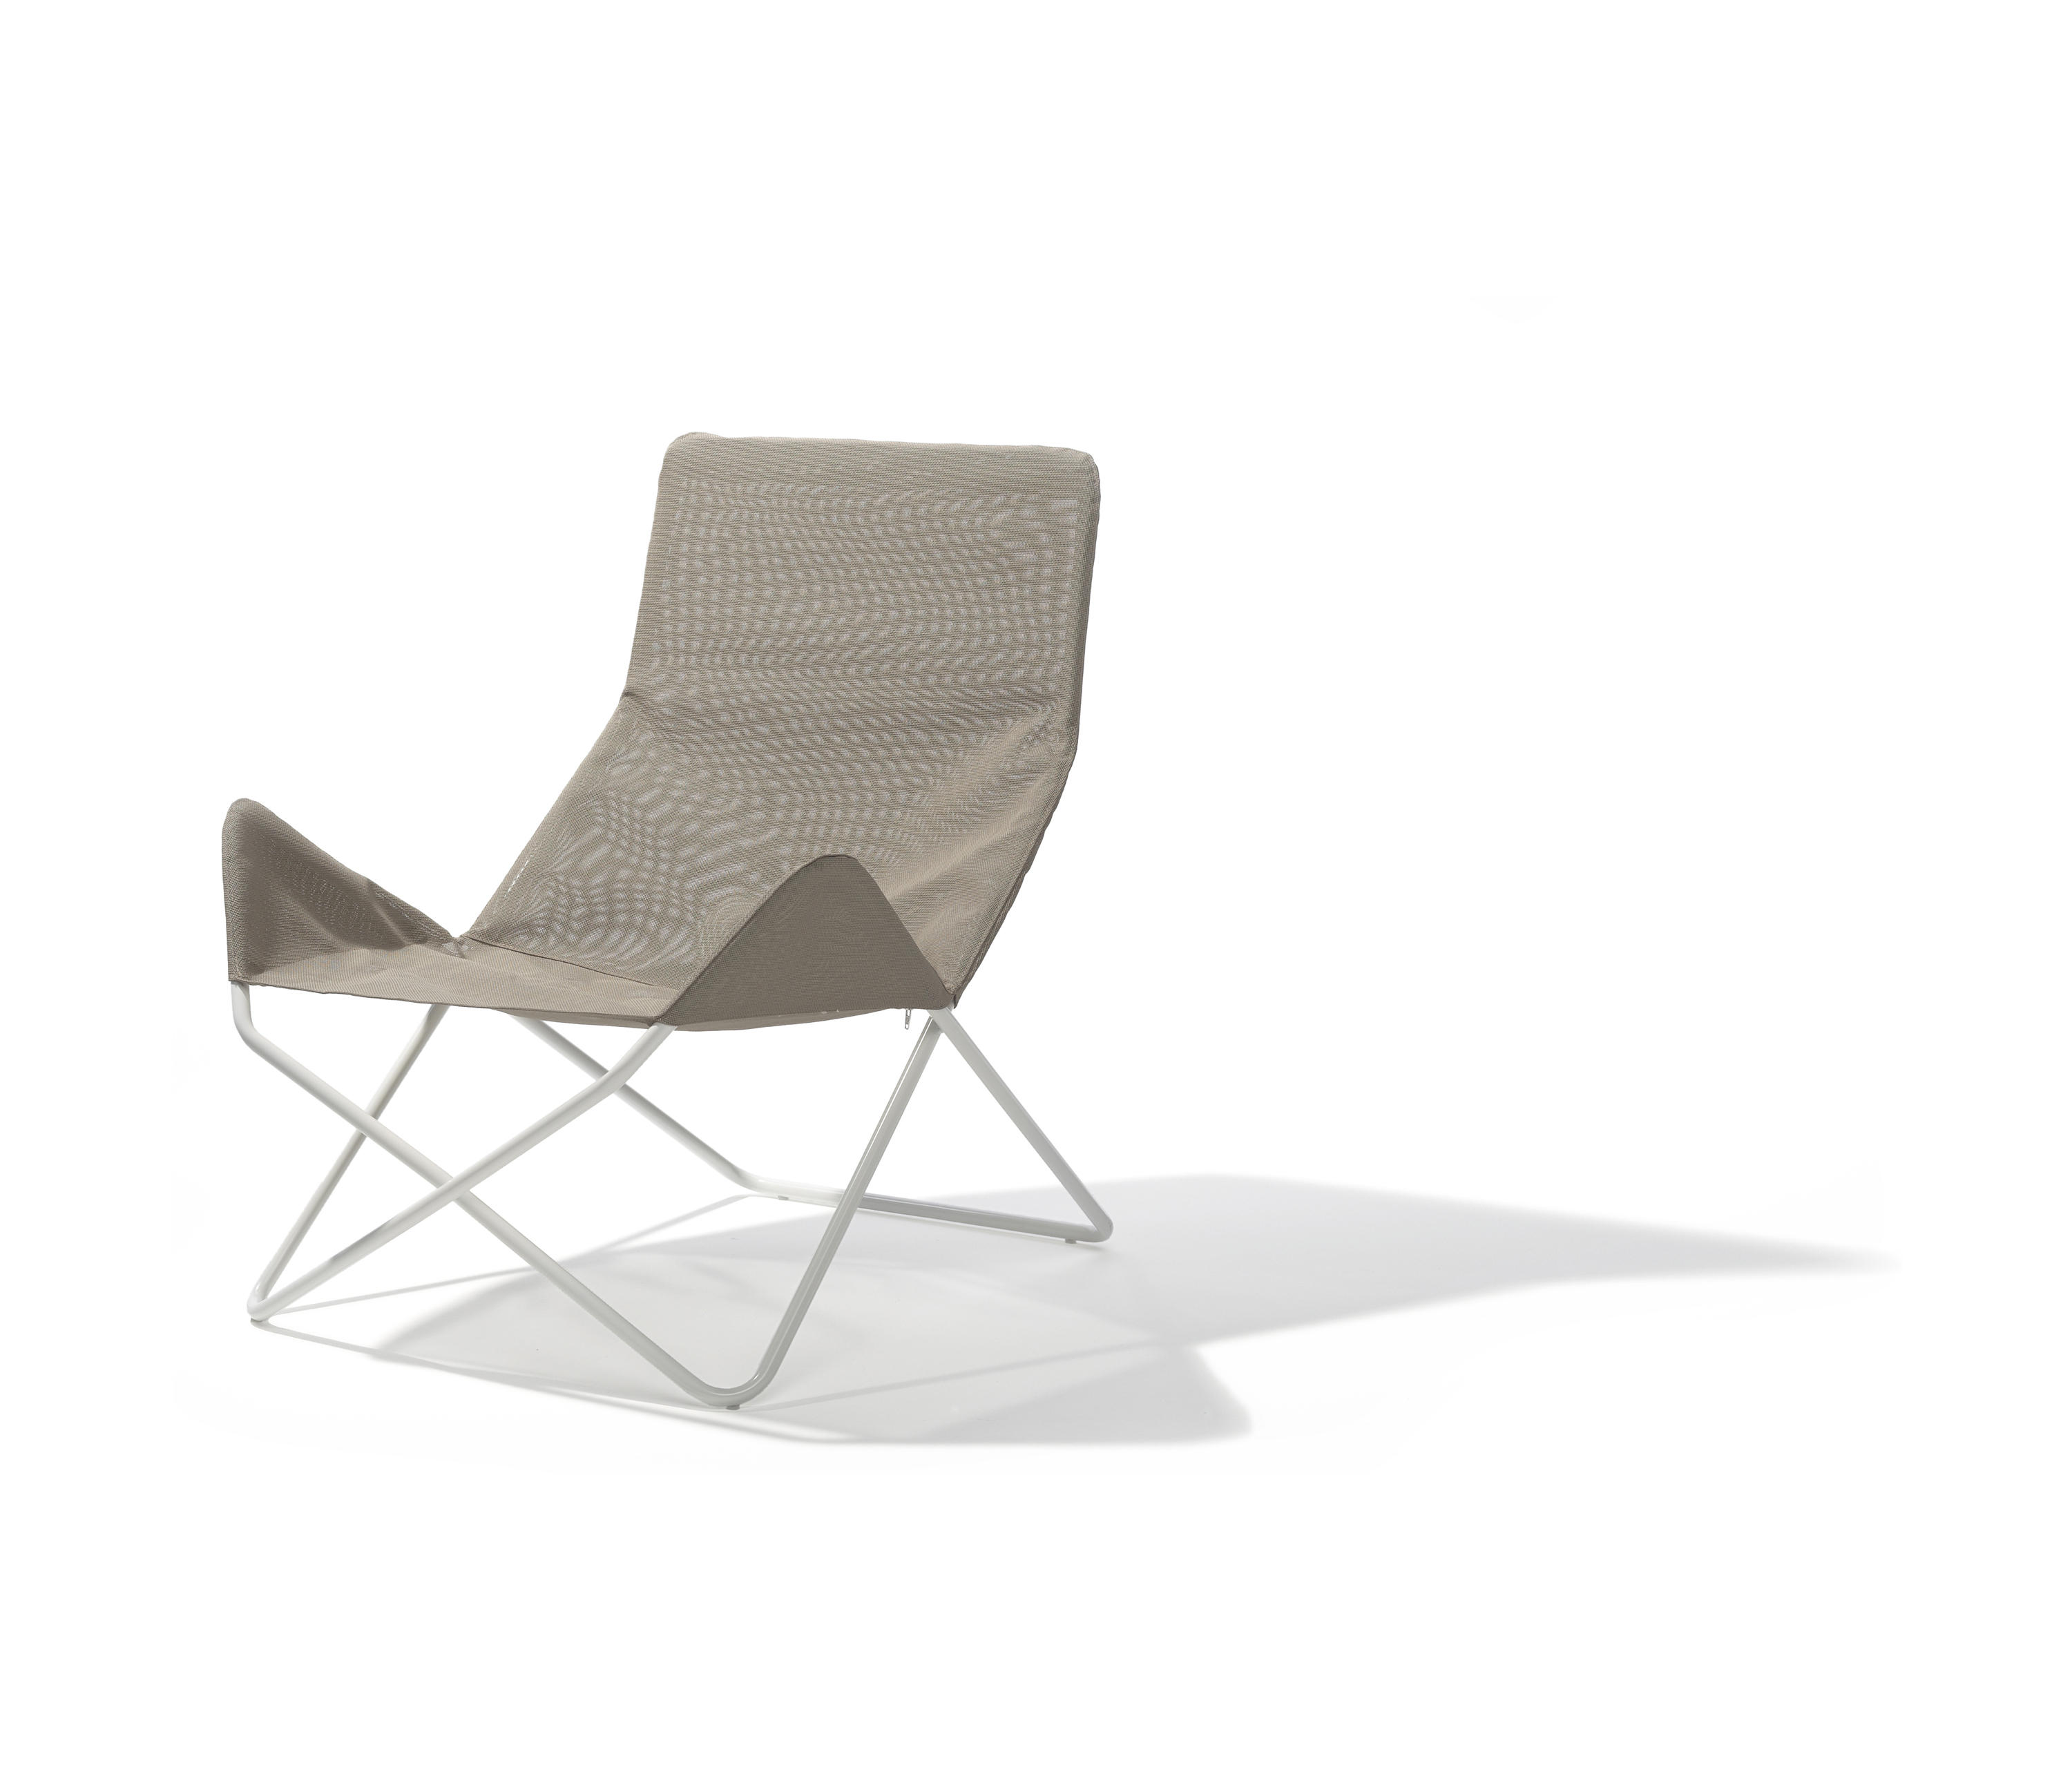 inout lounge chair outdoor by richard lampert garden armchairs